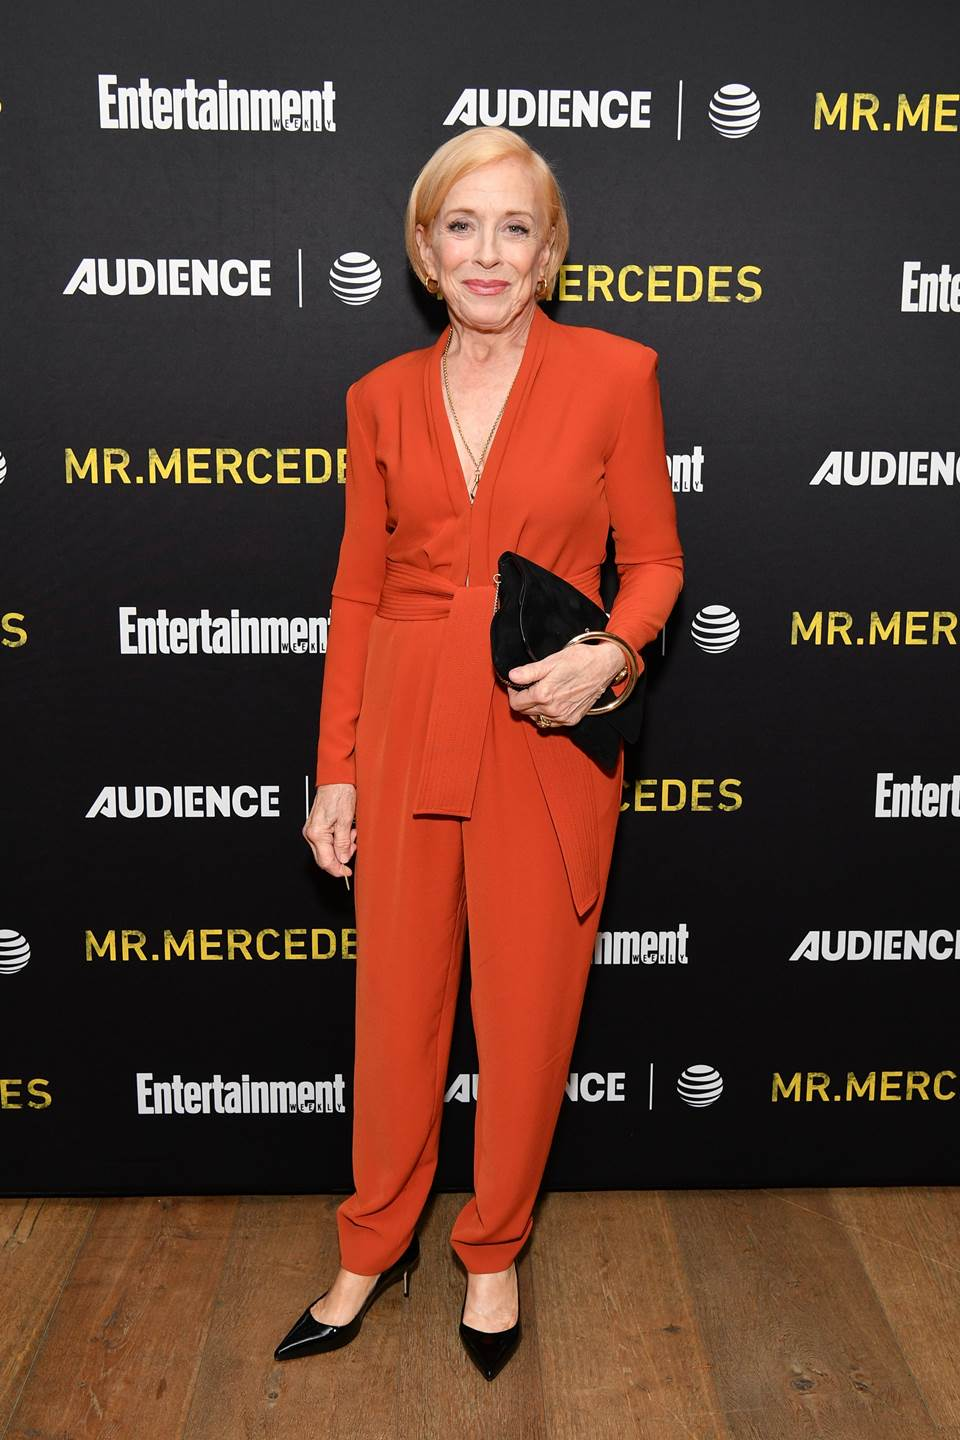 Dia Dipasupil/Getty Images for Entertainment Weekly via Getty Images